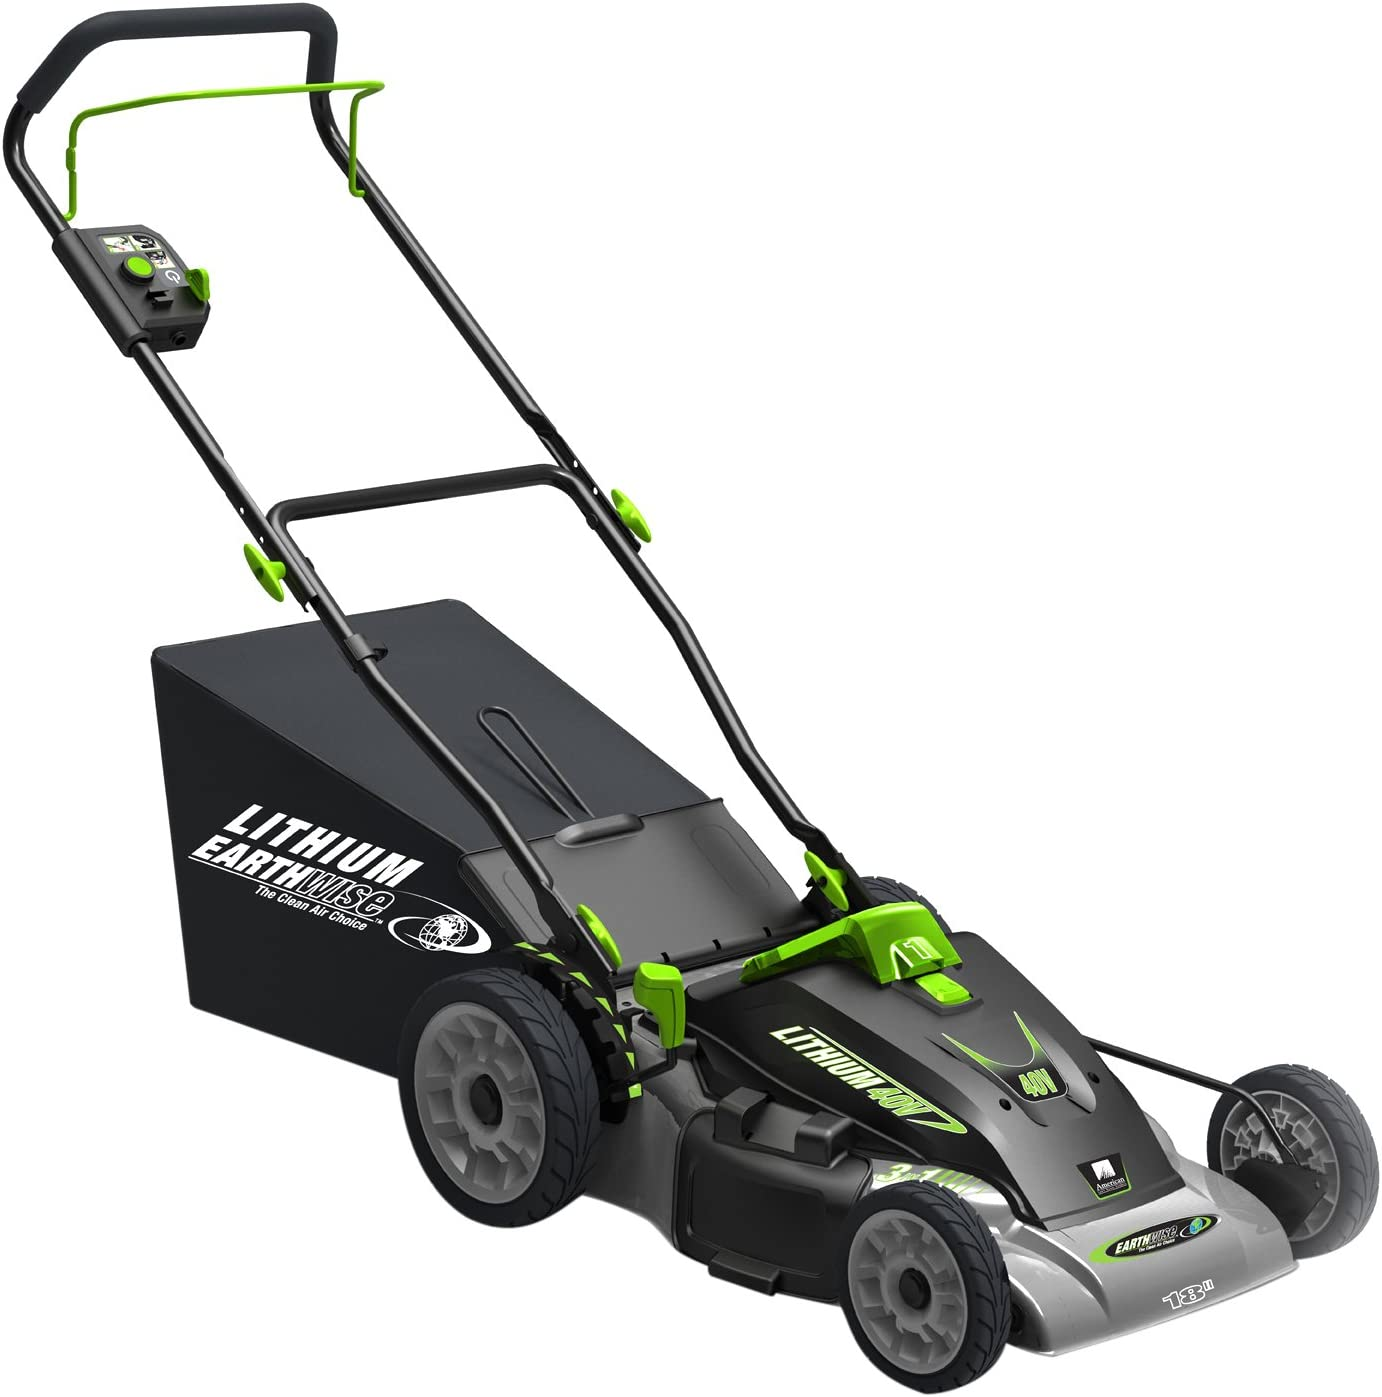 BEST LAWN MOWER FOR STEEP SLOPES